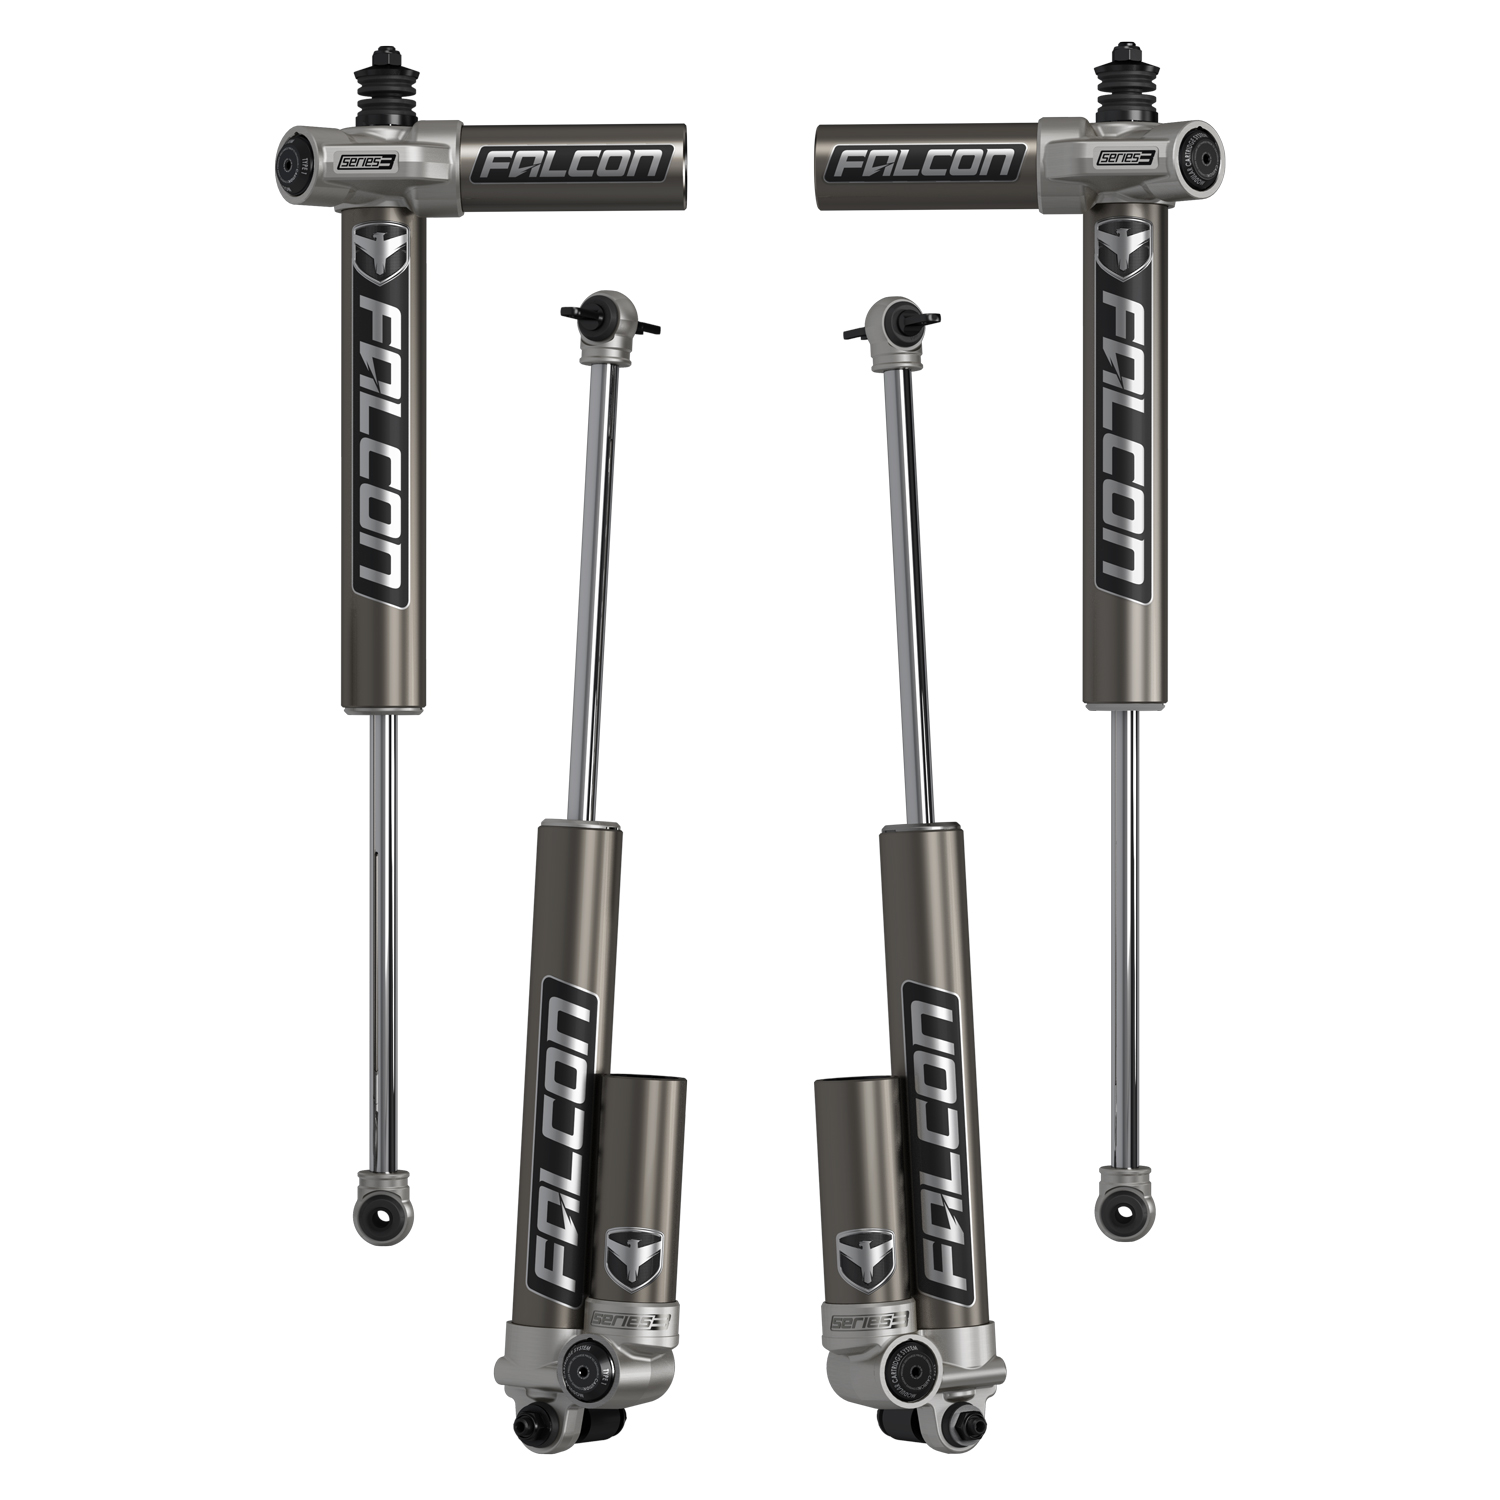 Teraflex Falcon Series 3.1 Piggyback Shocks Front & Rear Kit 1.5-2.5in Lift - JK 4DR